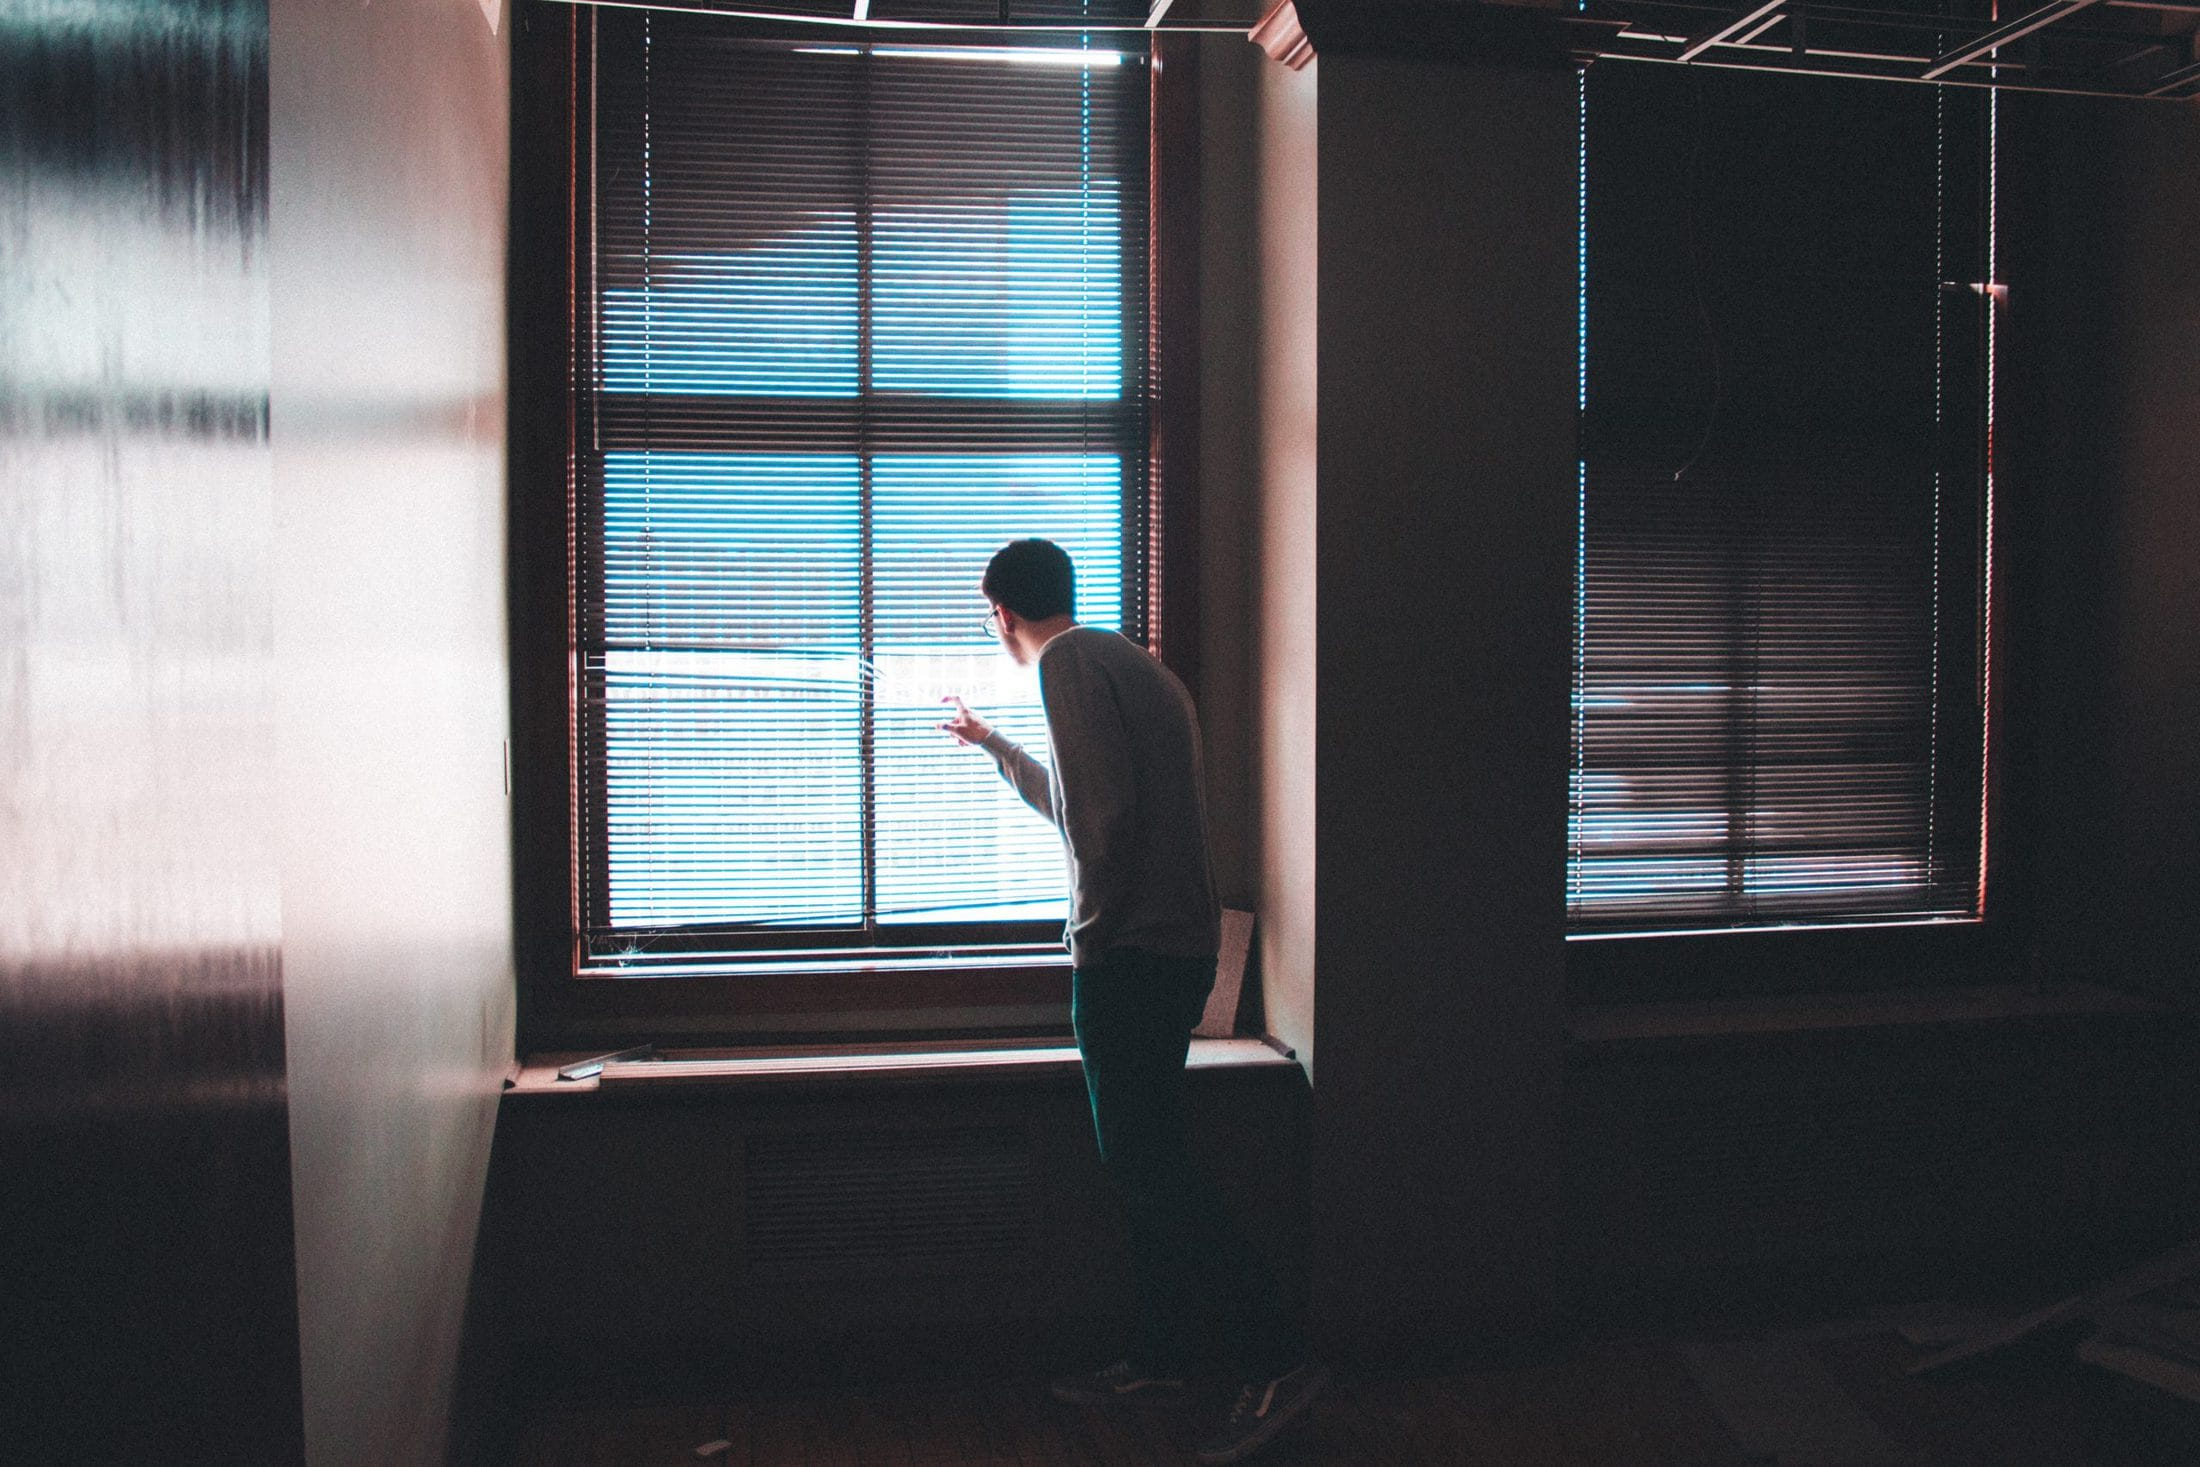 man standing near window inside building